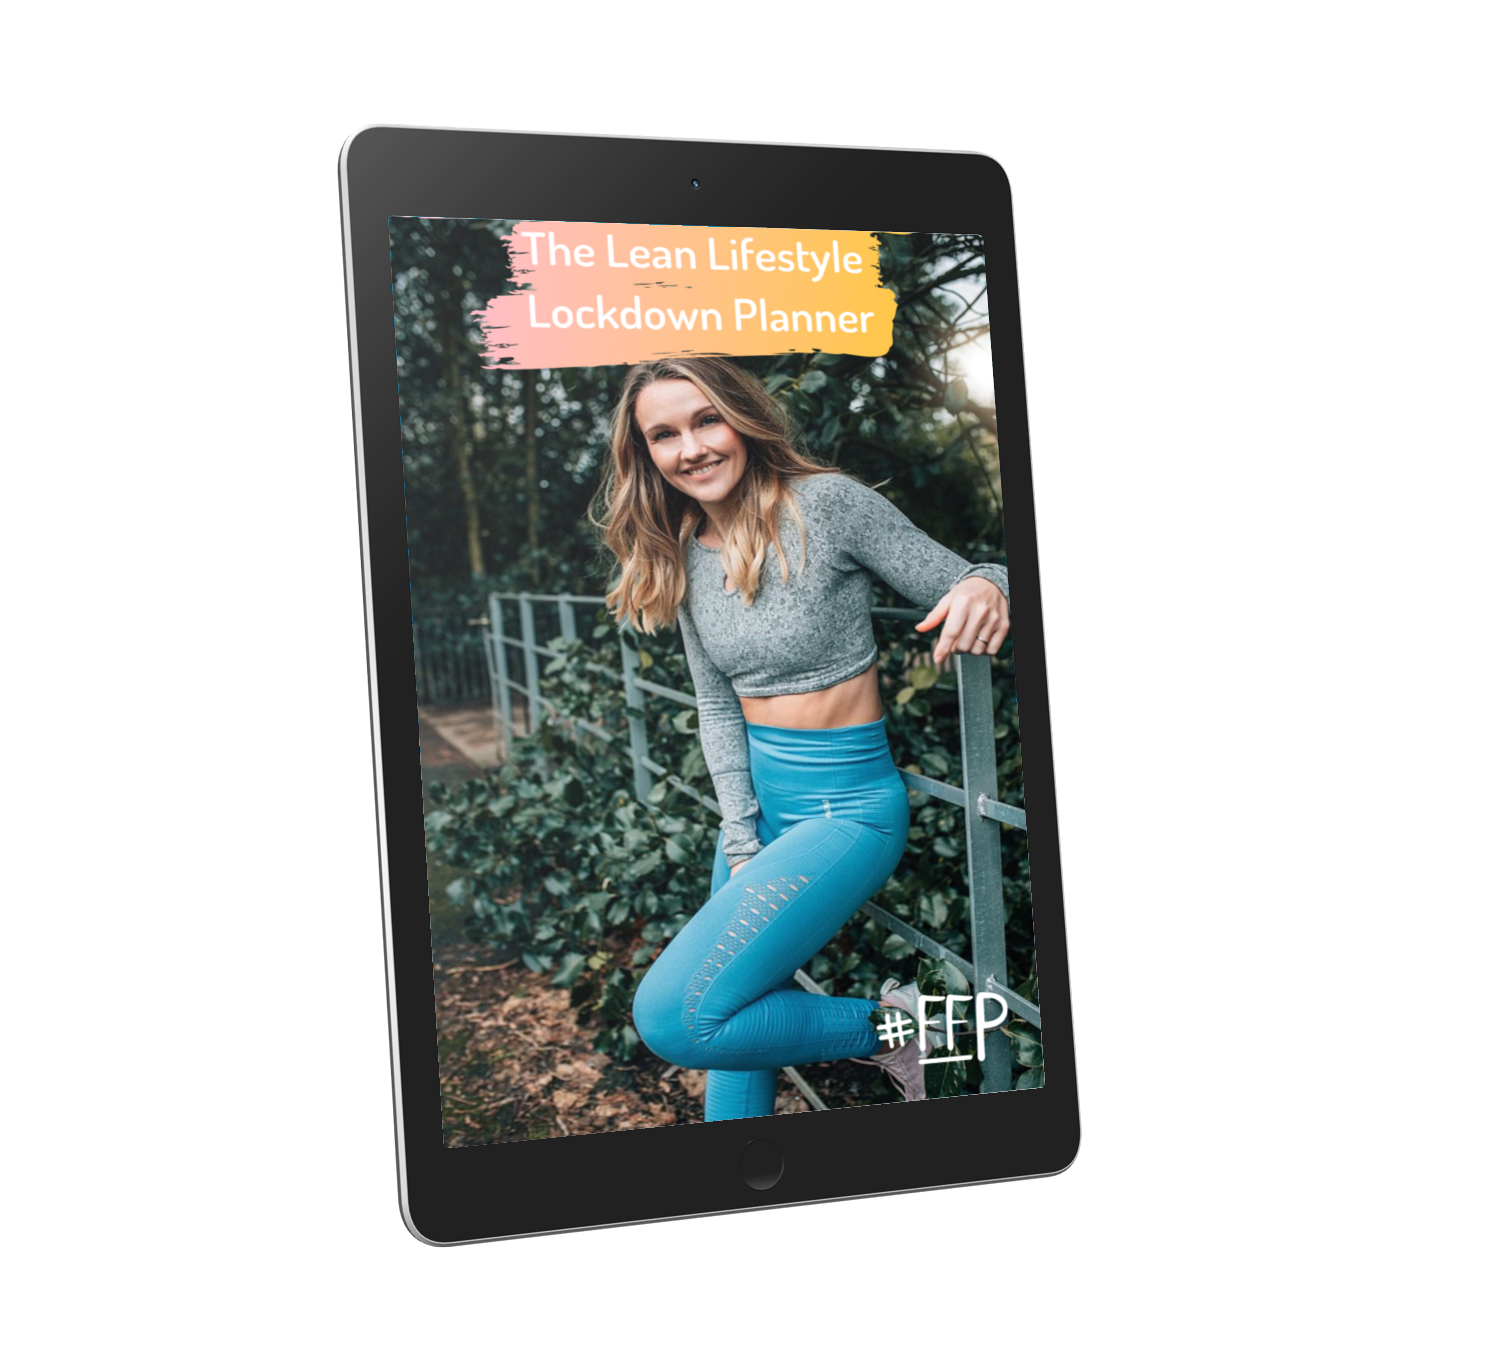 The FFP Lean Lifestyle Lockdown Planner with Leanne Conroy